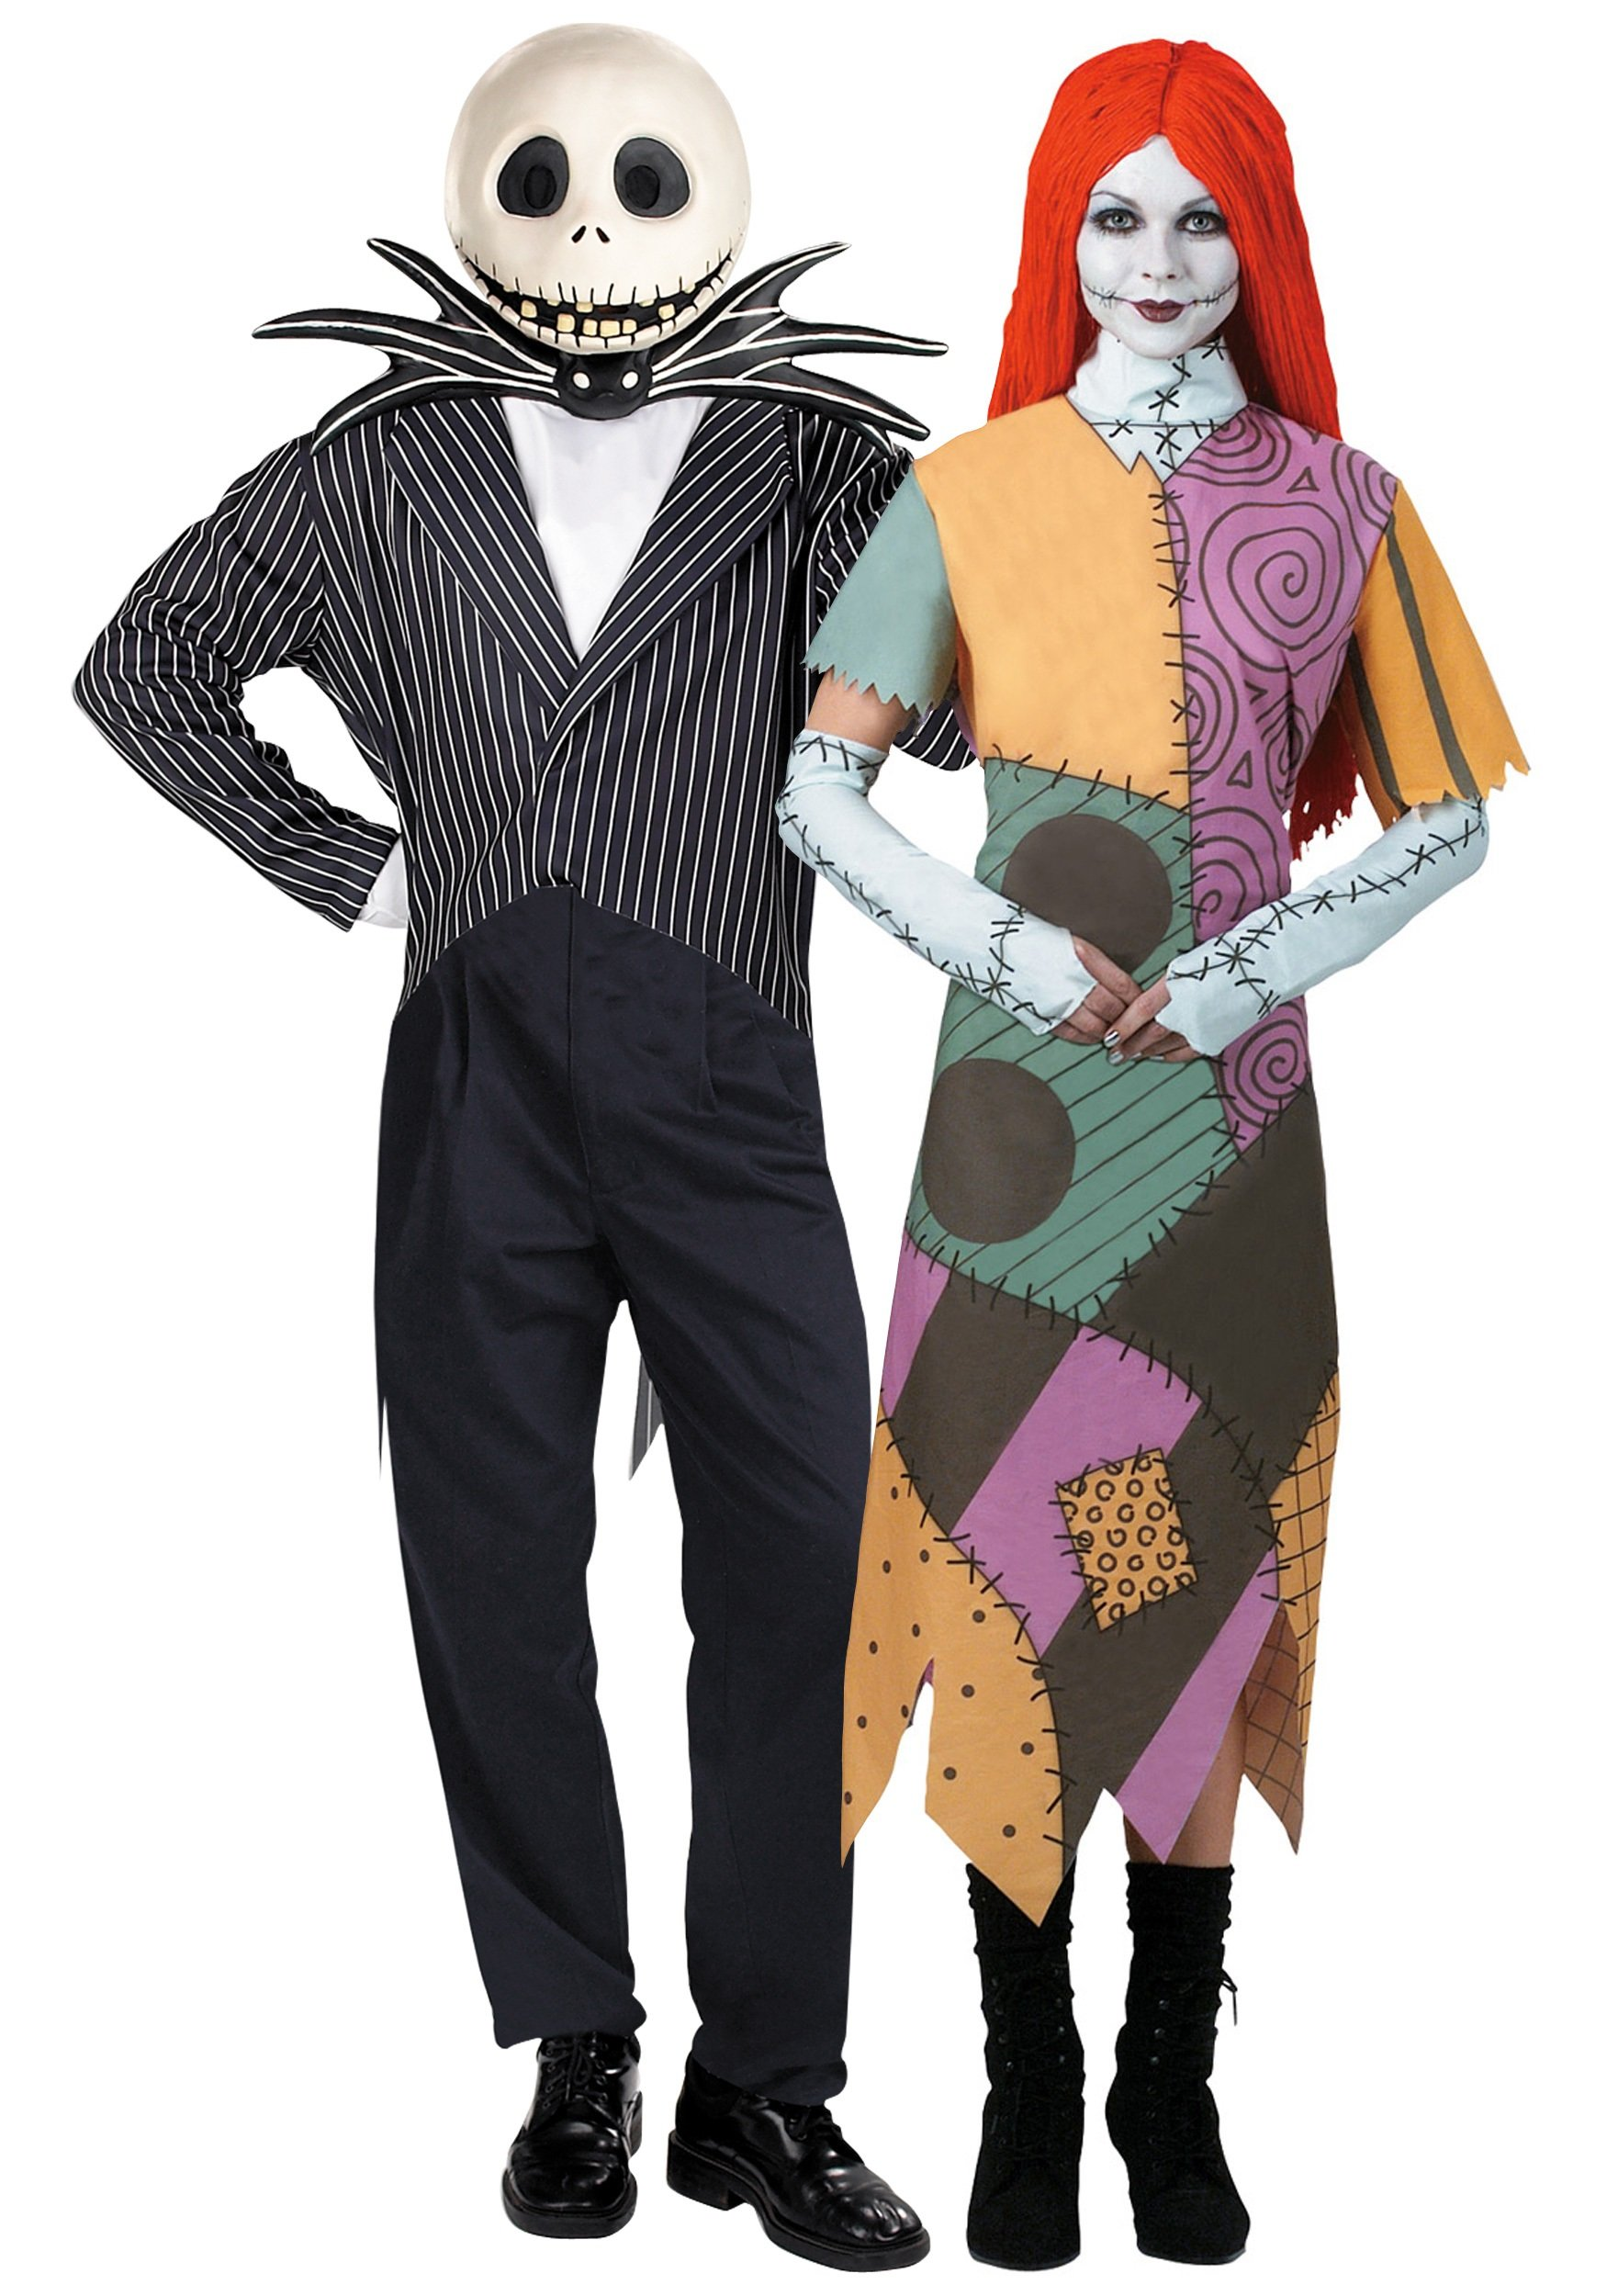 imagescostumesgalorenet nightmare before christmas couple costume